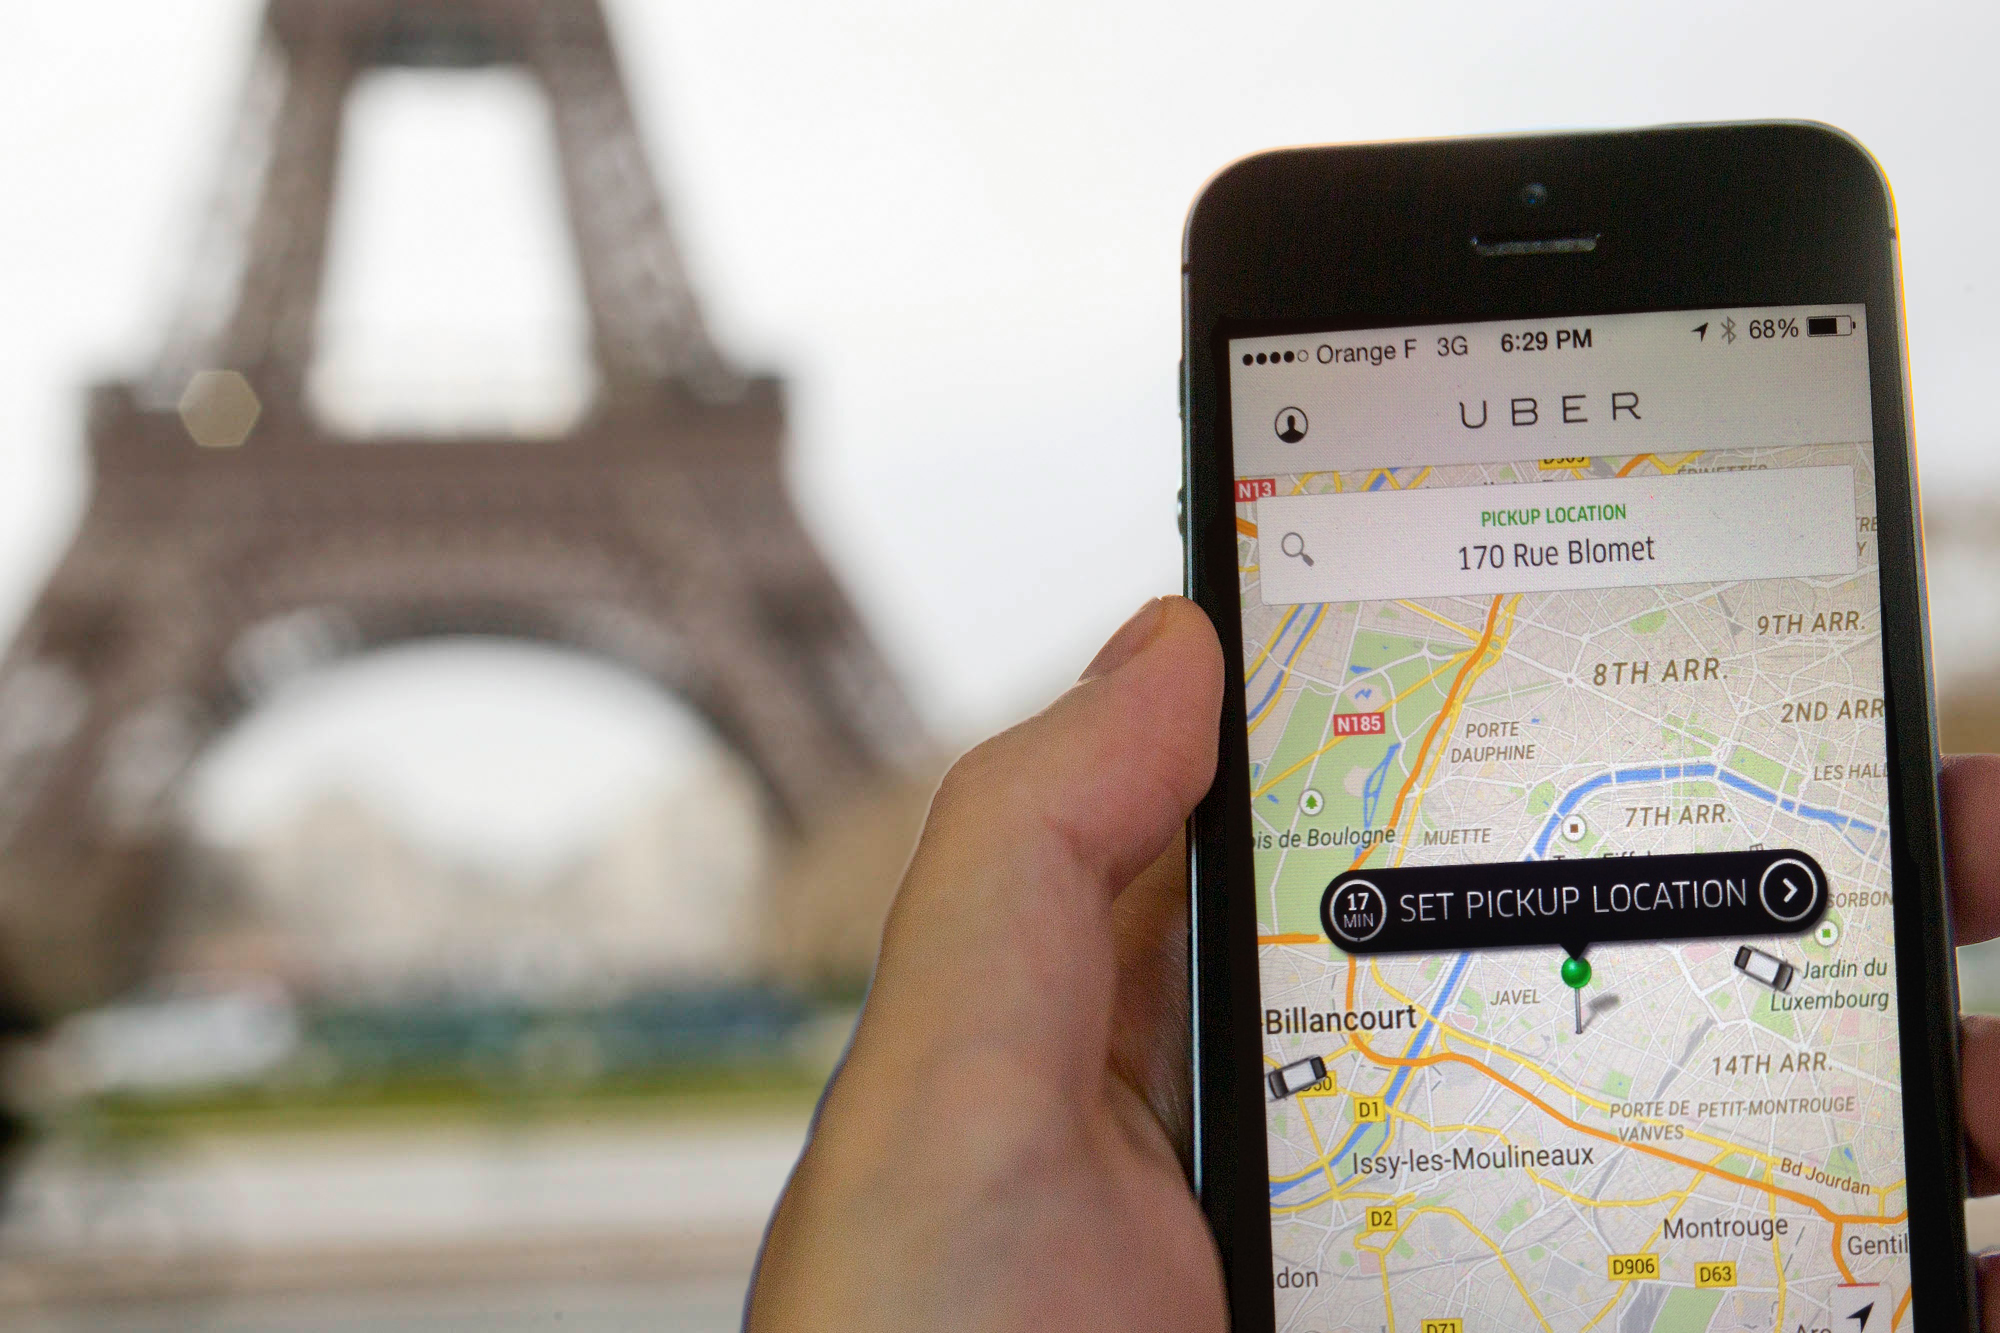 The Eiffel Tower seen on the screen of a cellphone in Paris,